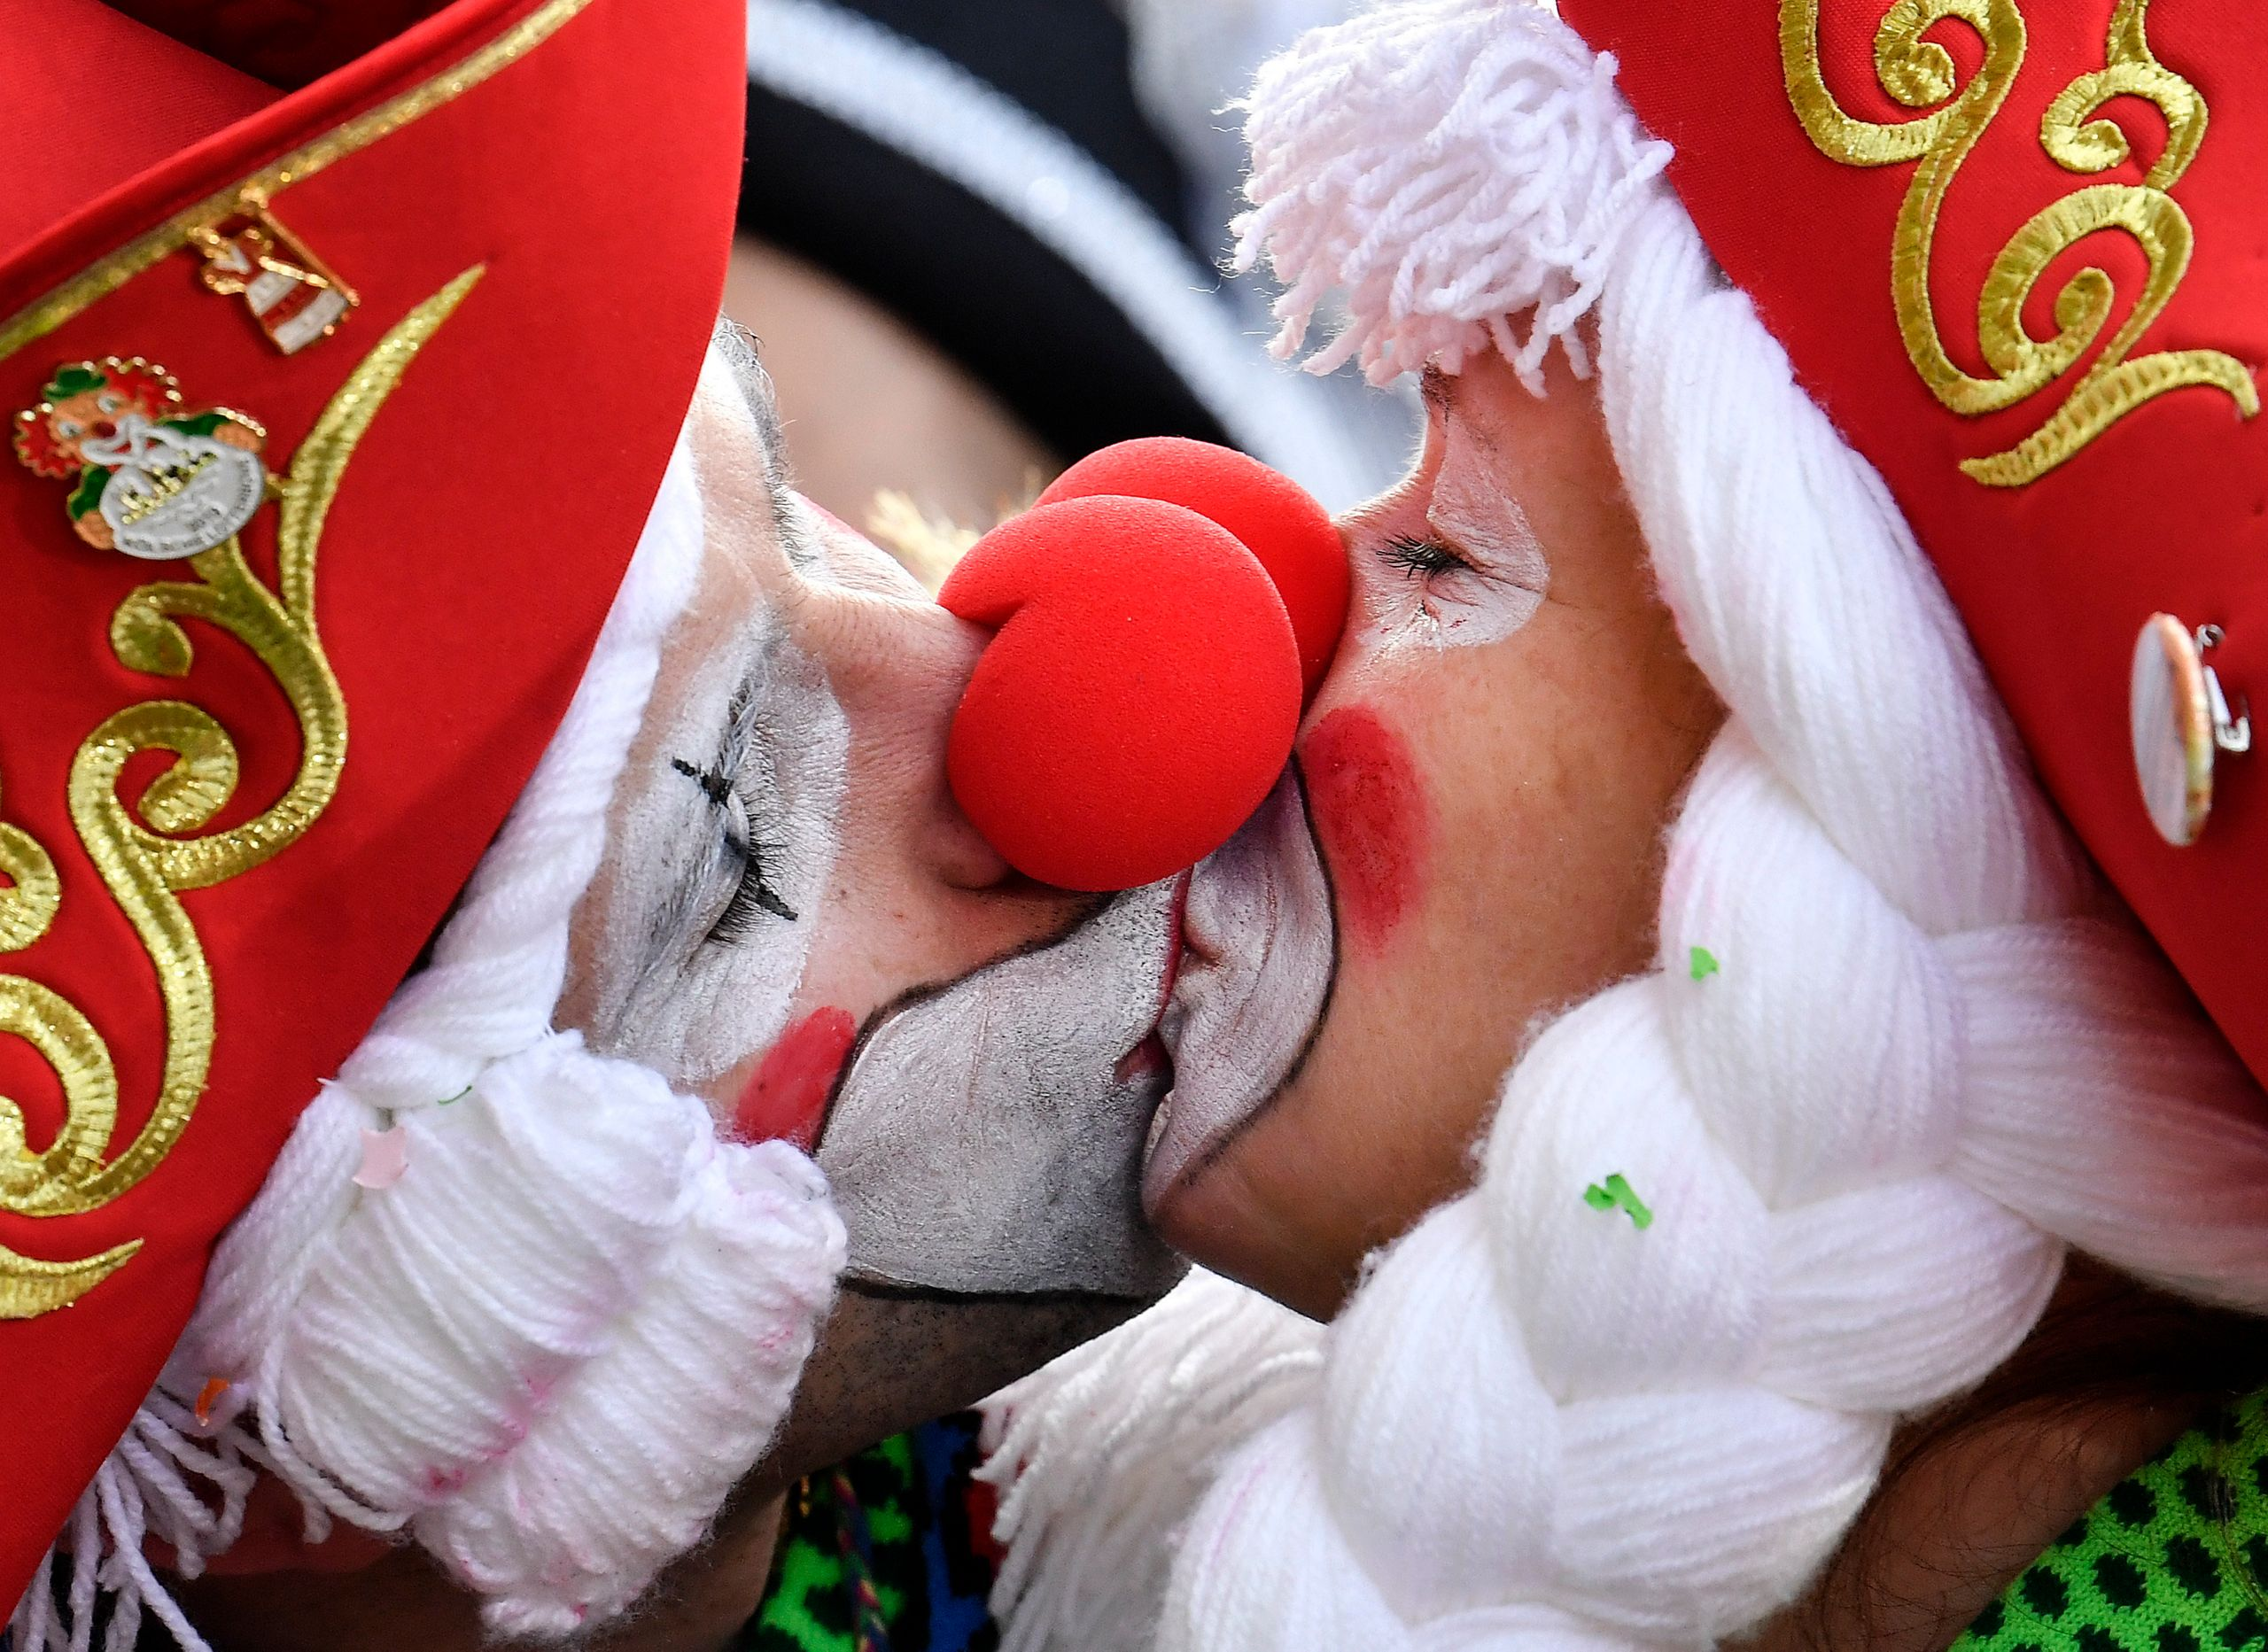 Two revelers kiss for photographers as thousands dressed in costumes celebrate the start of the street carnival in Cologne, G